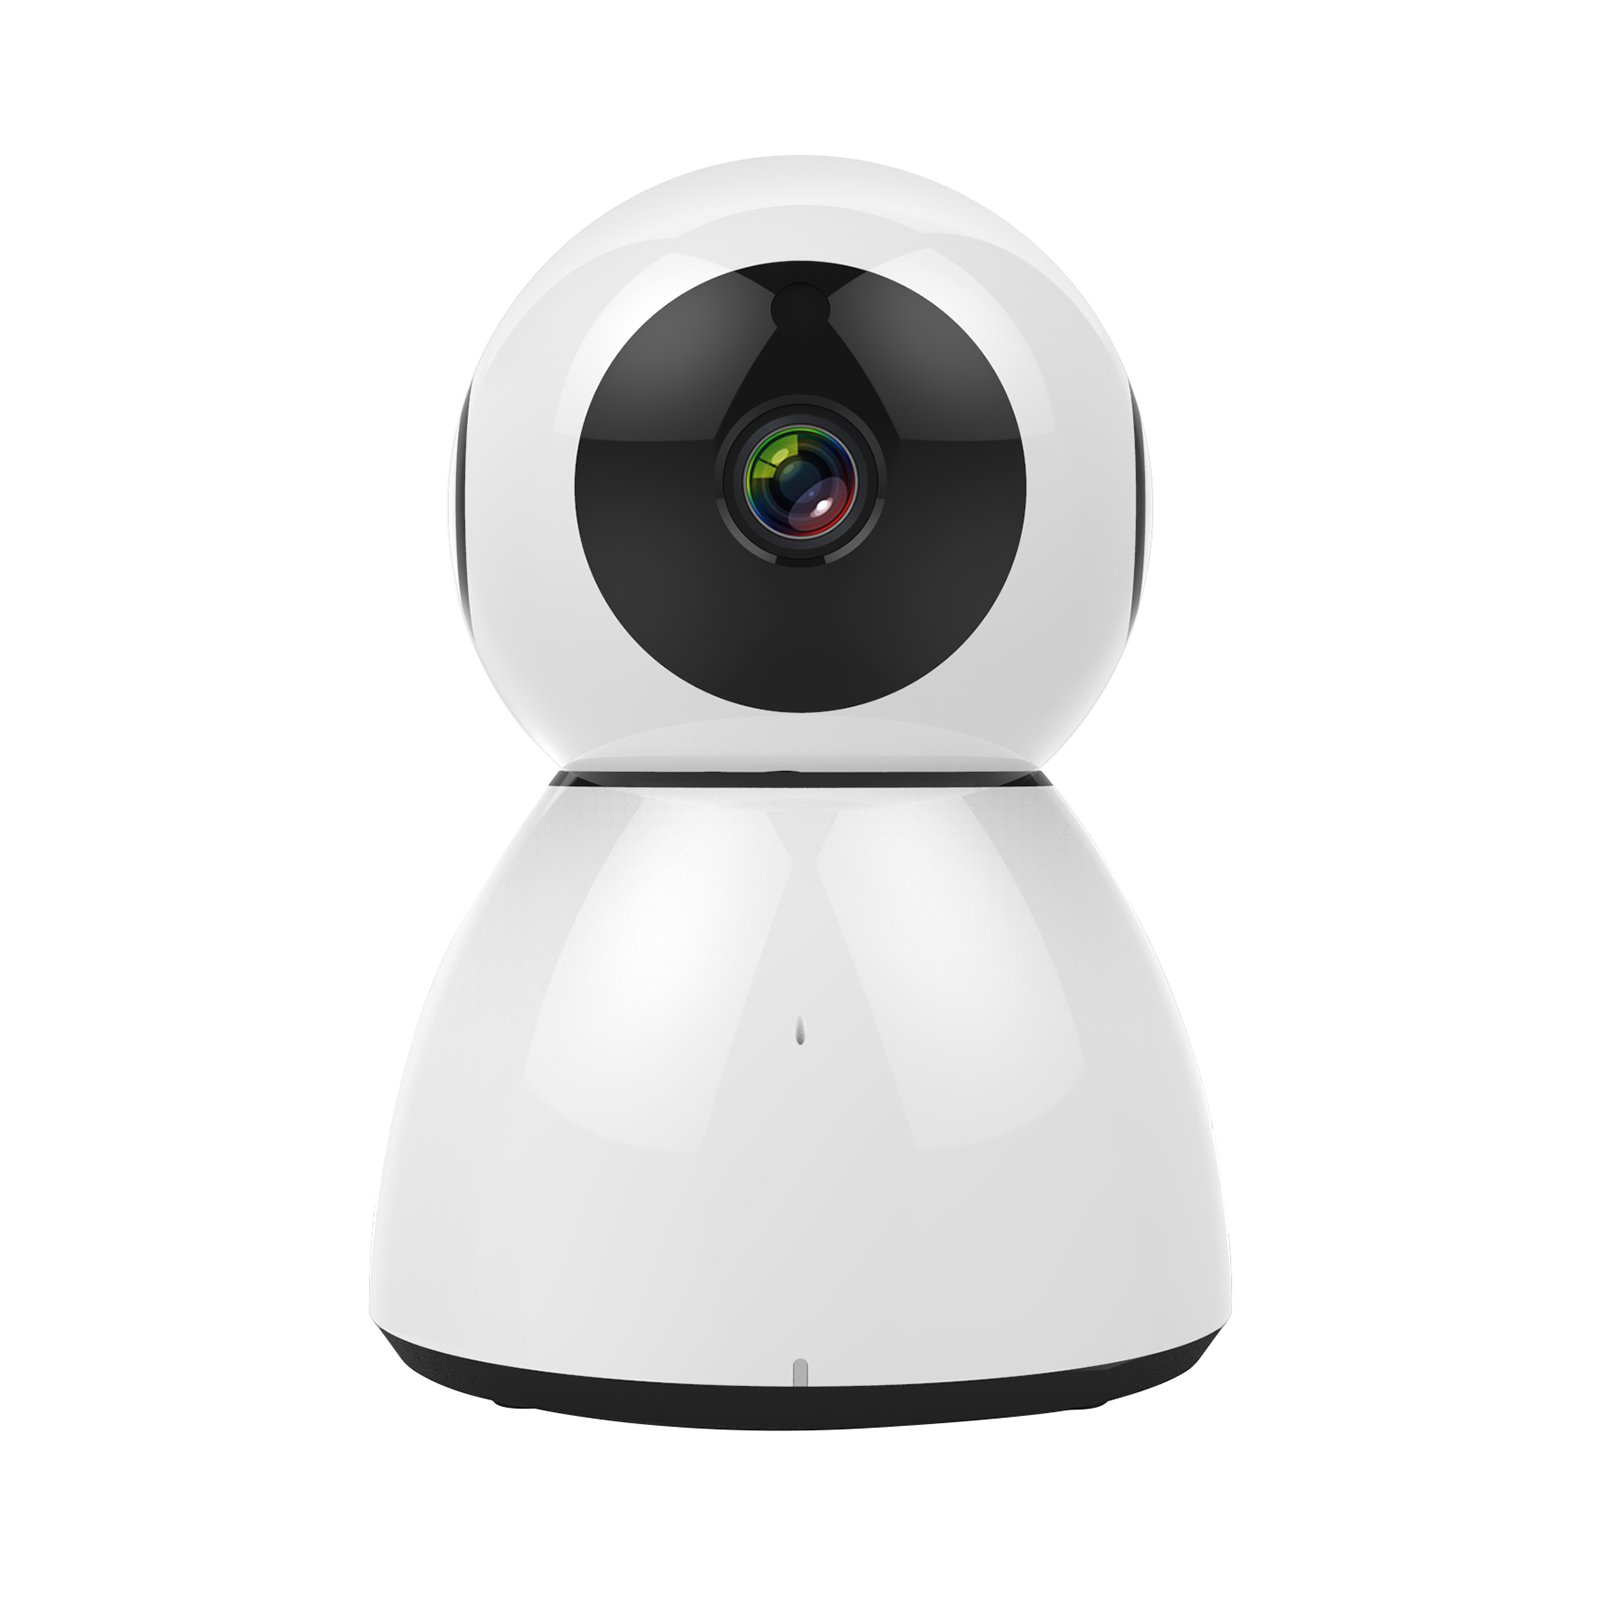 Wireless 1080P Security Camera, Home Surveillance IP Camera for Baby/Elder/Pet Monitor Night Vision, Motion Tracker White